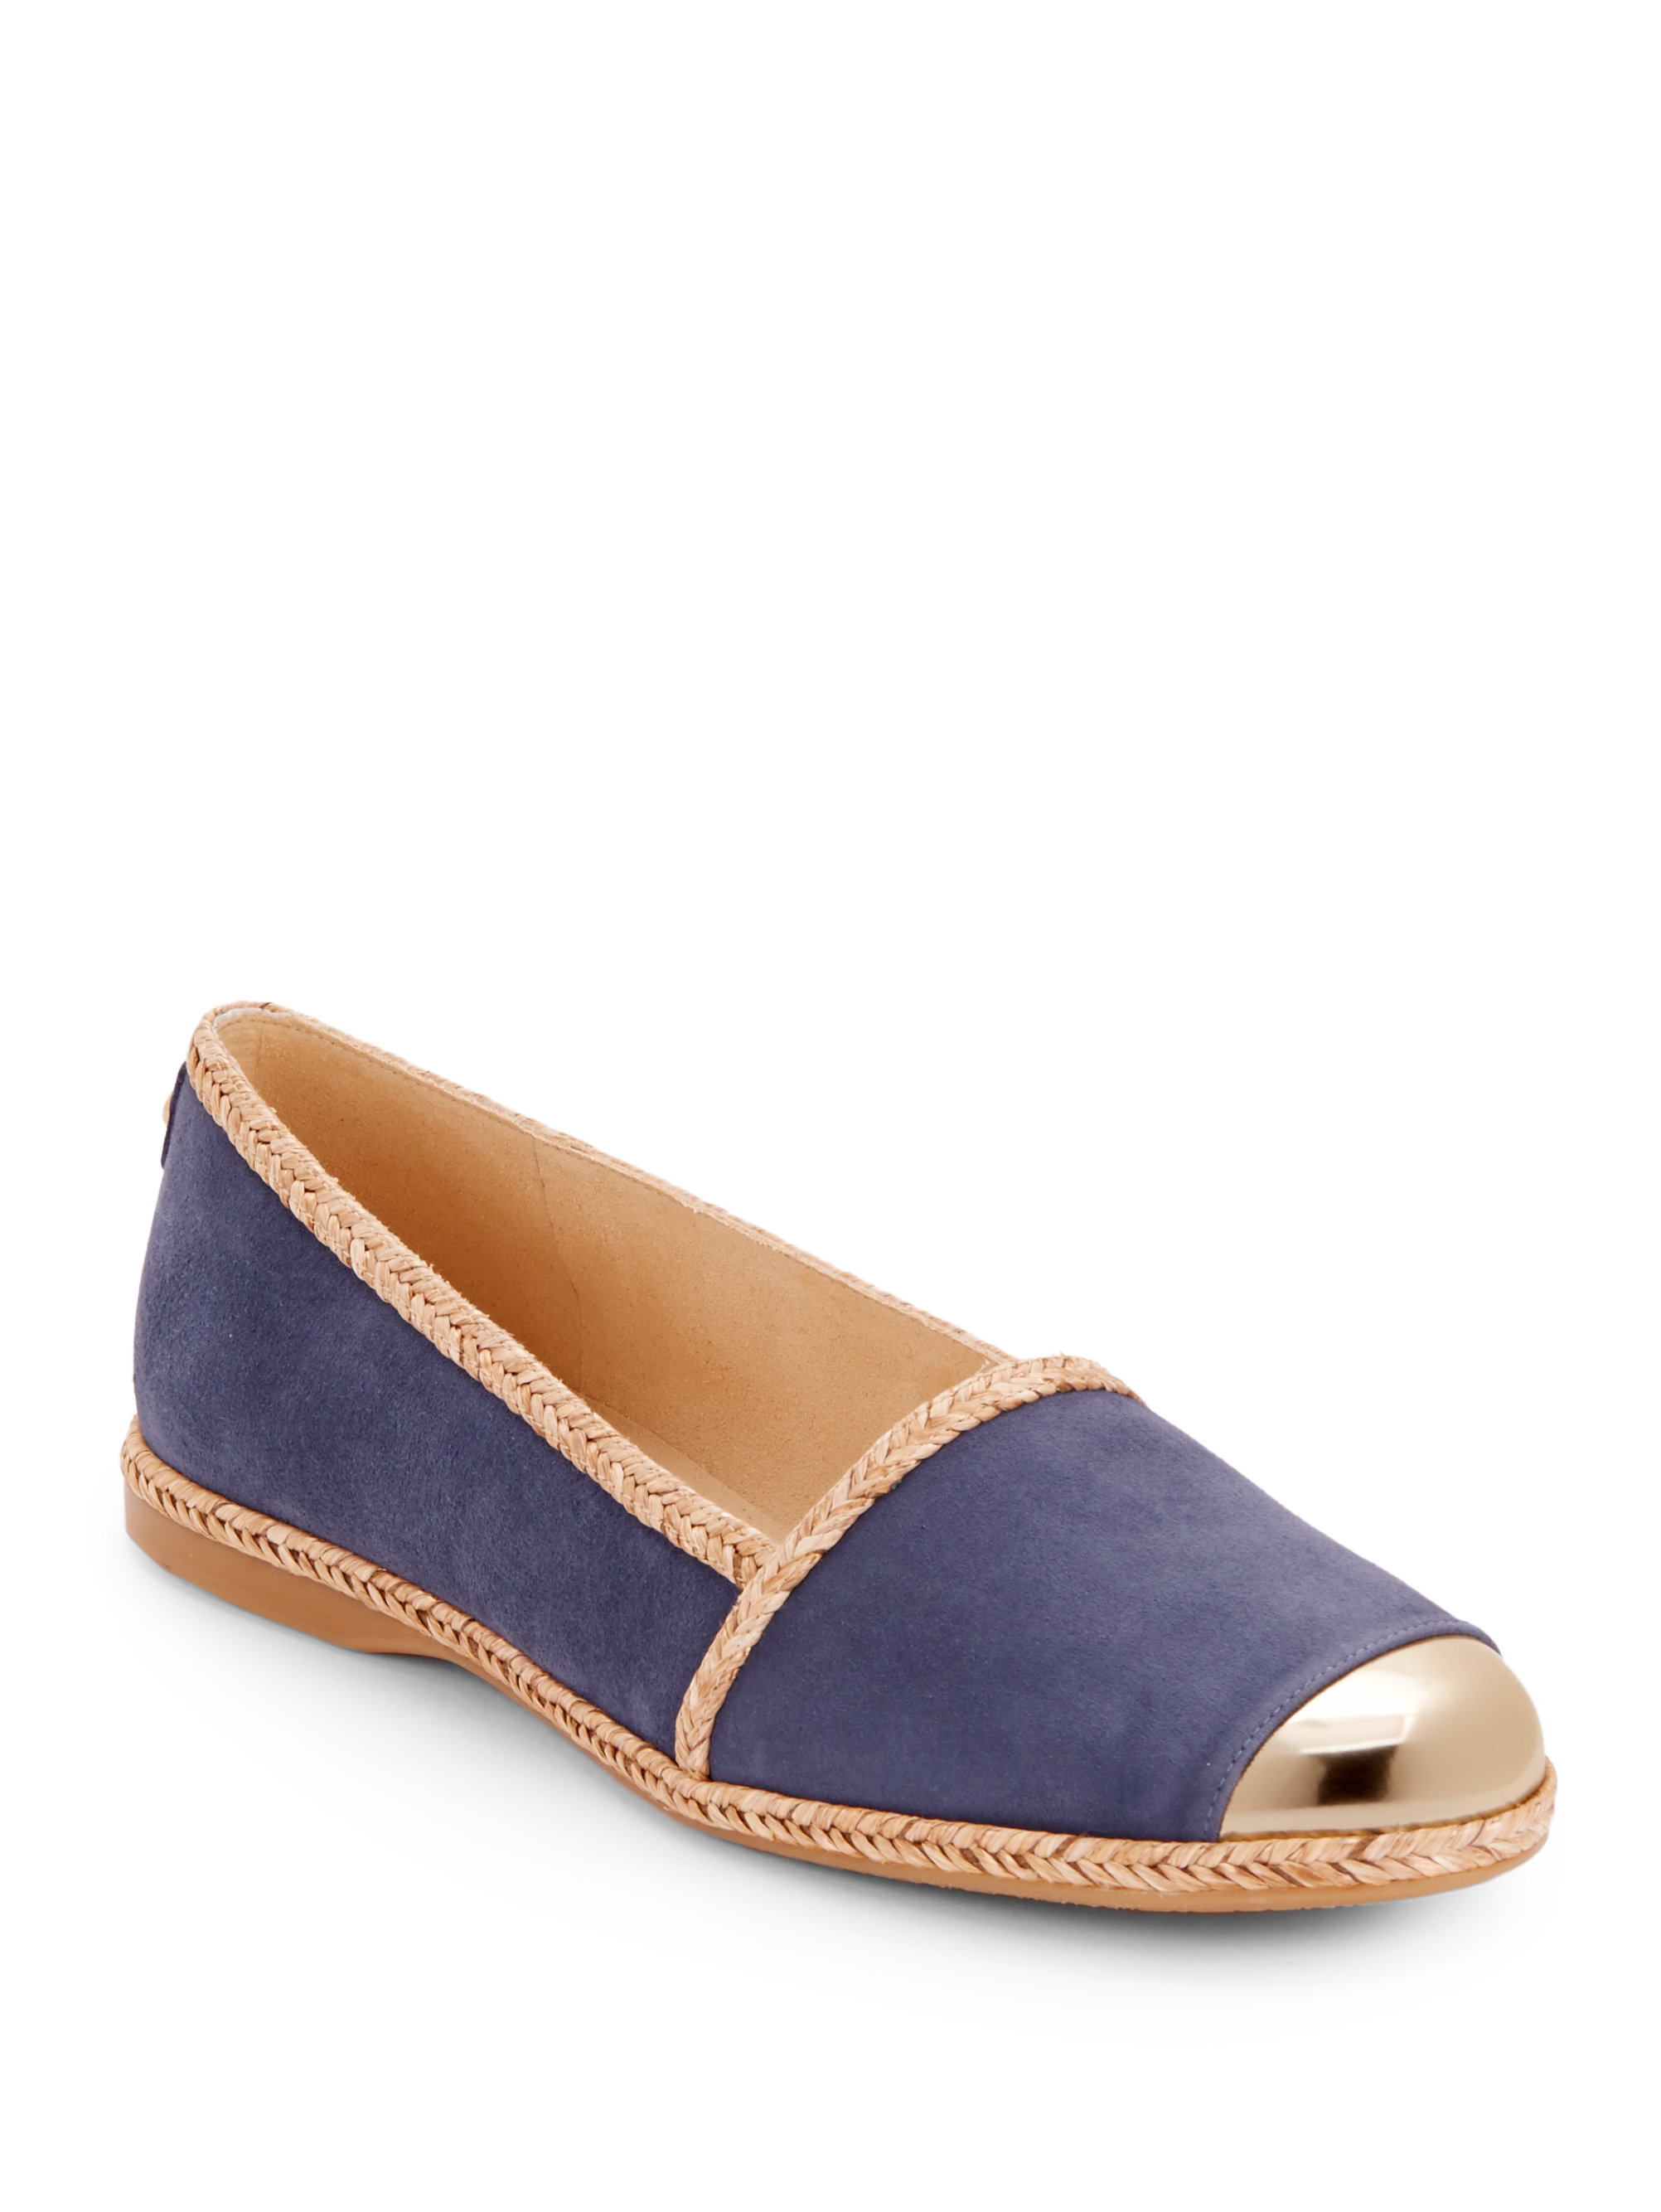 Stuart Weitzman Suede Cap-Toe Espadrilles free shipping shopping online latest collections sale online 7cTdOBCmu